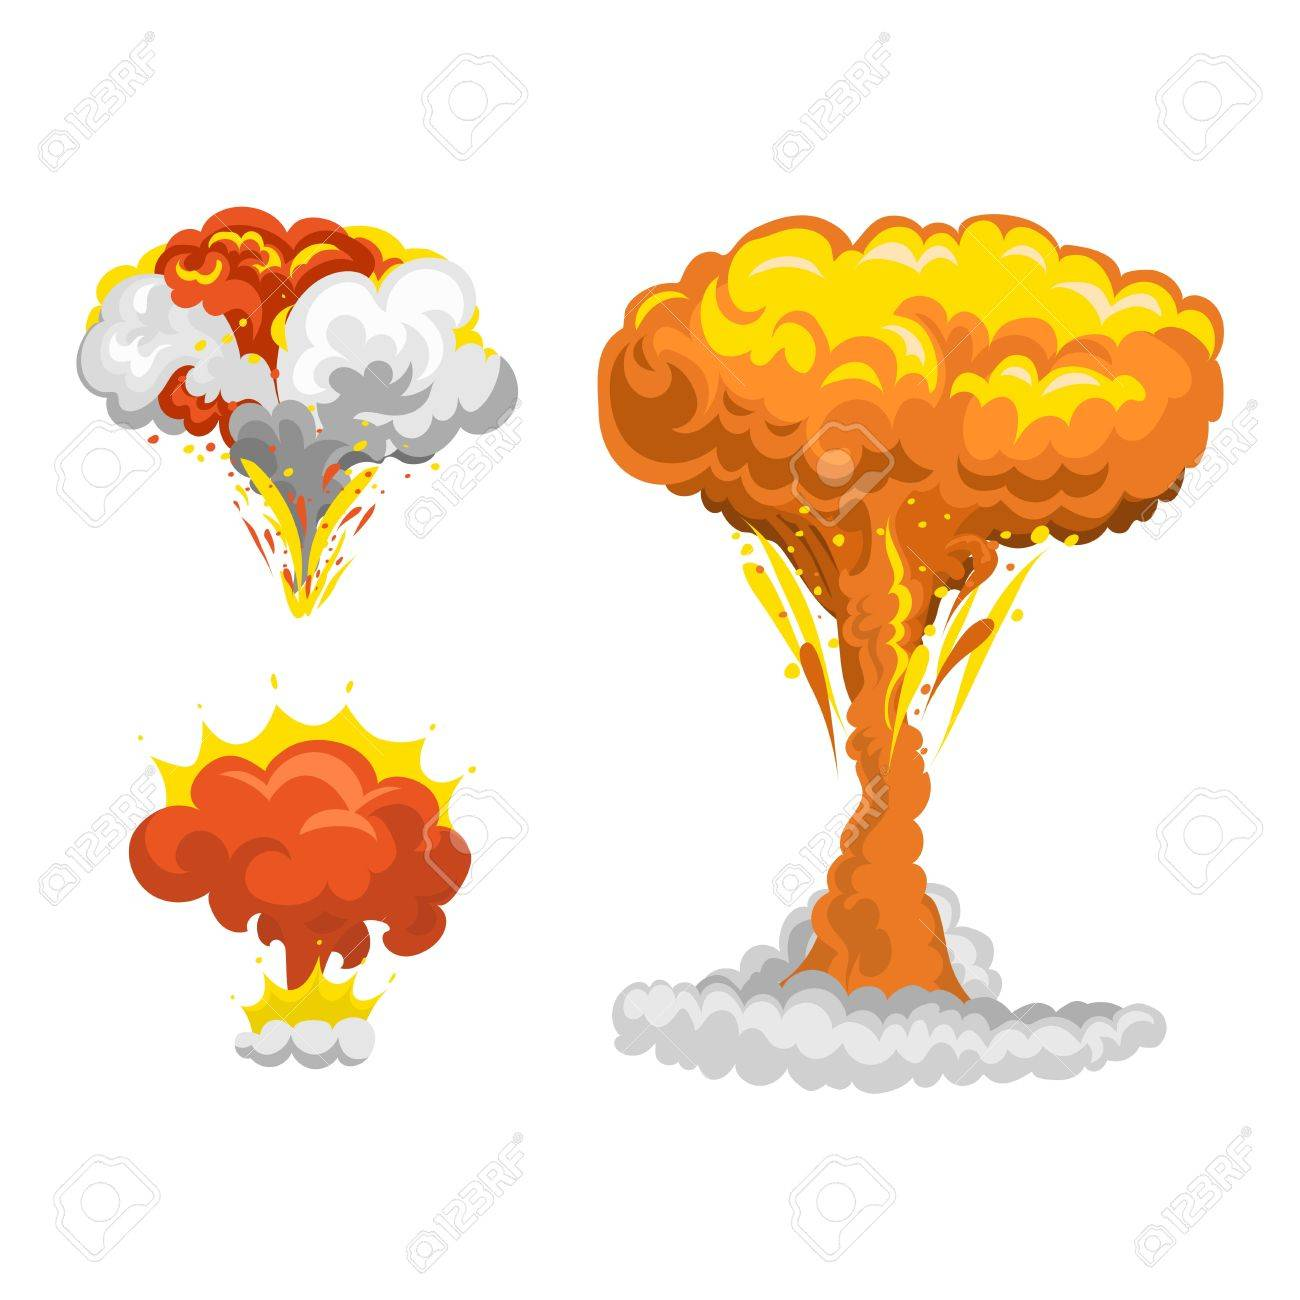 bomb explosion effect vector boom fire and strong explosion royalty free cliparts vectors and stock illustration image 64836157 bomb explosion effect vector boom fire and strong explosion